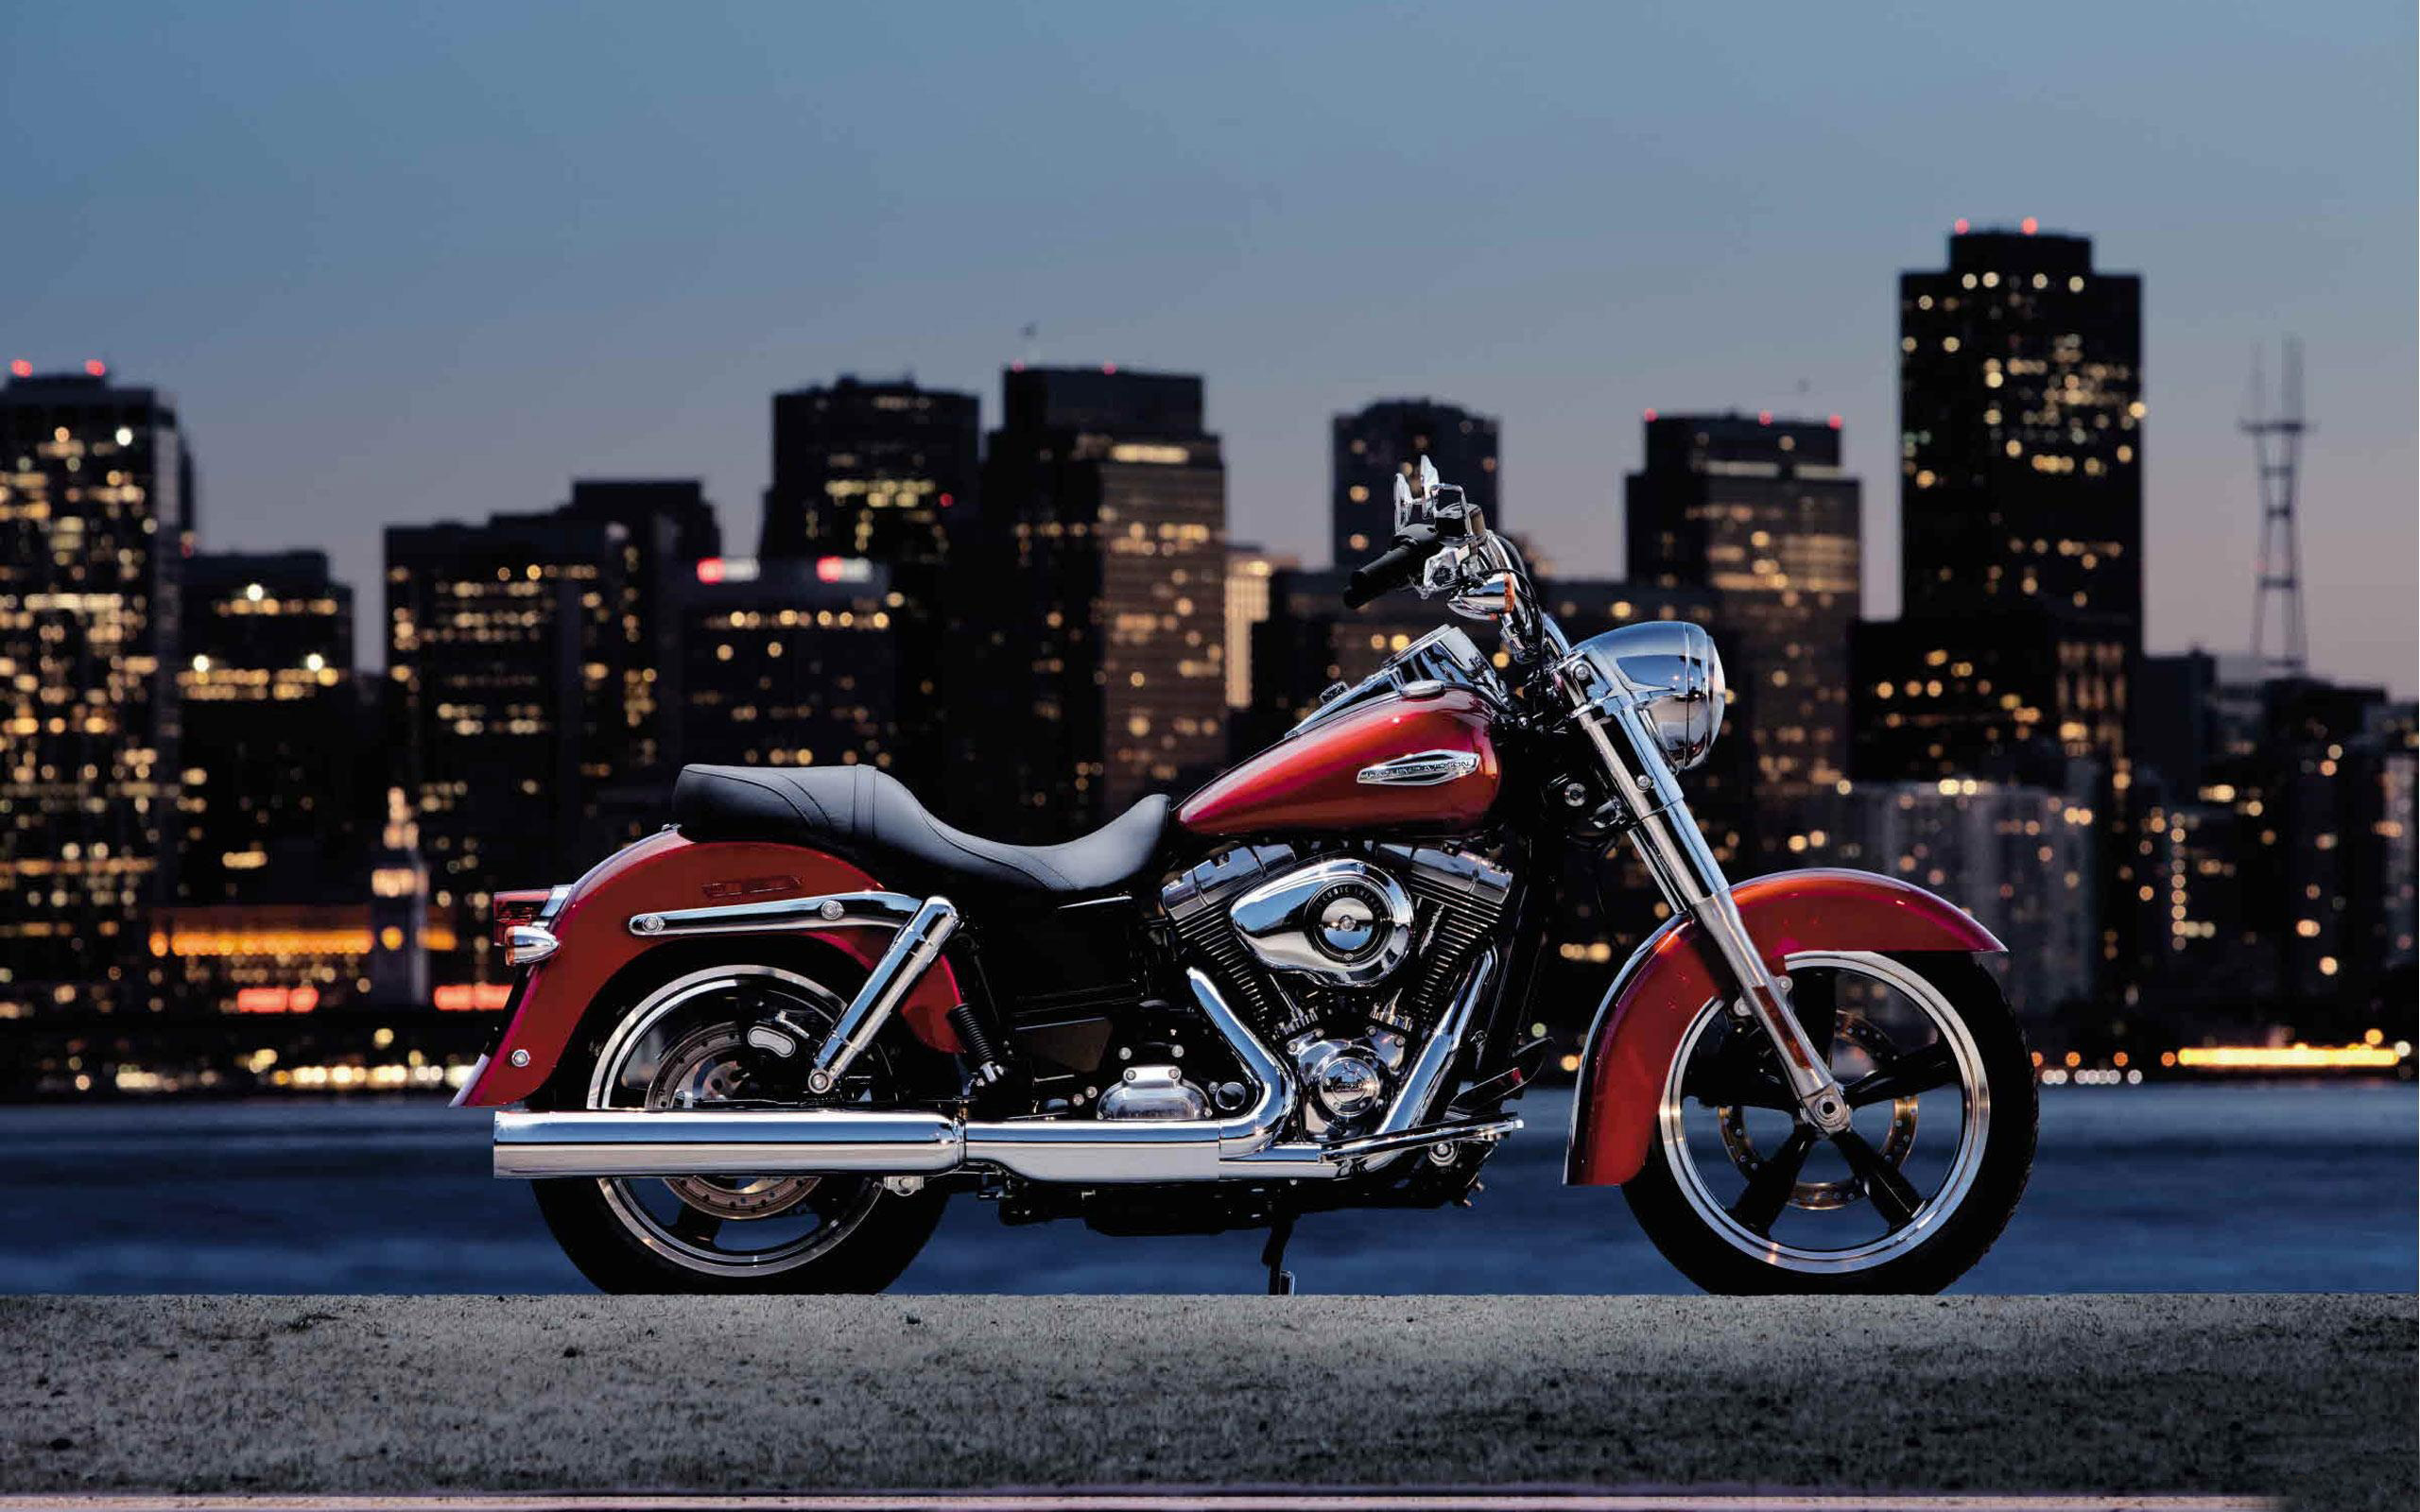 Harley Davidson Wallpapers Hd Best Bikes Pictures By Atit